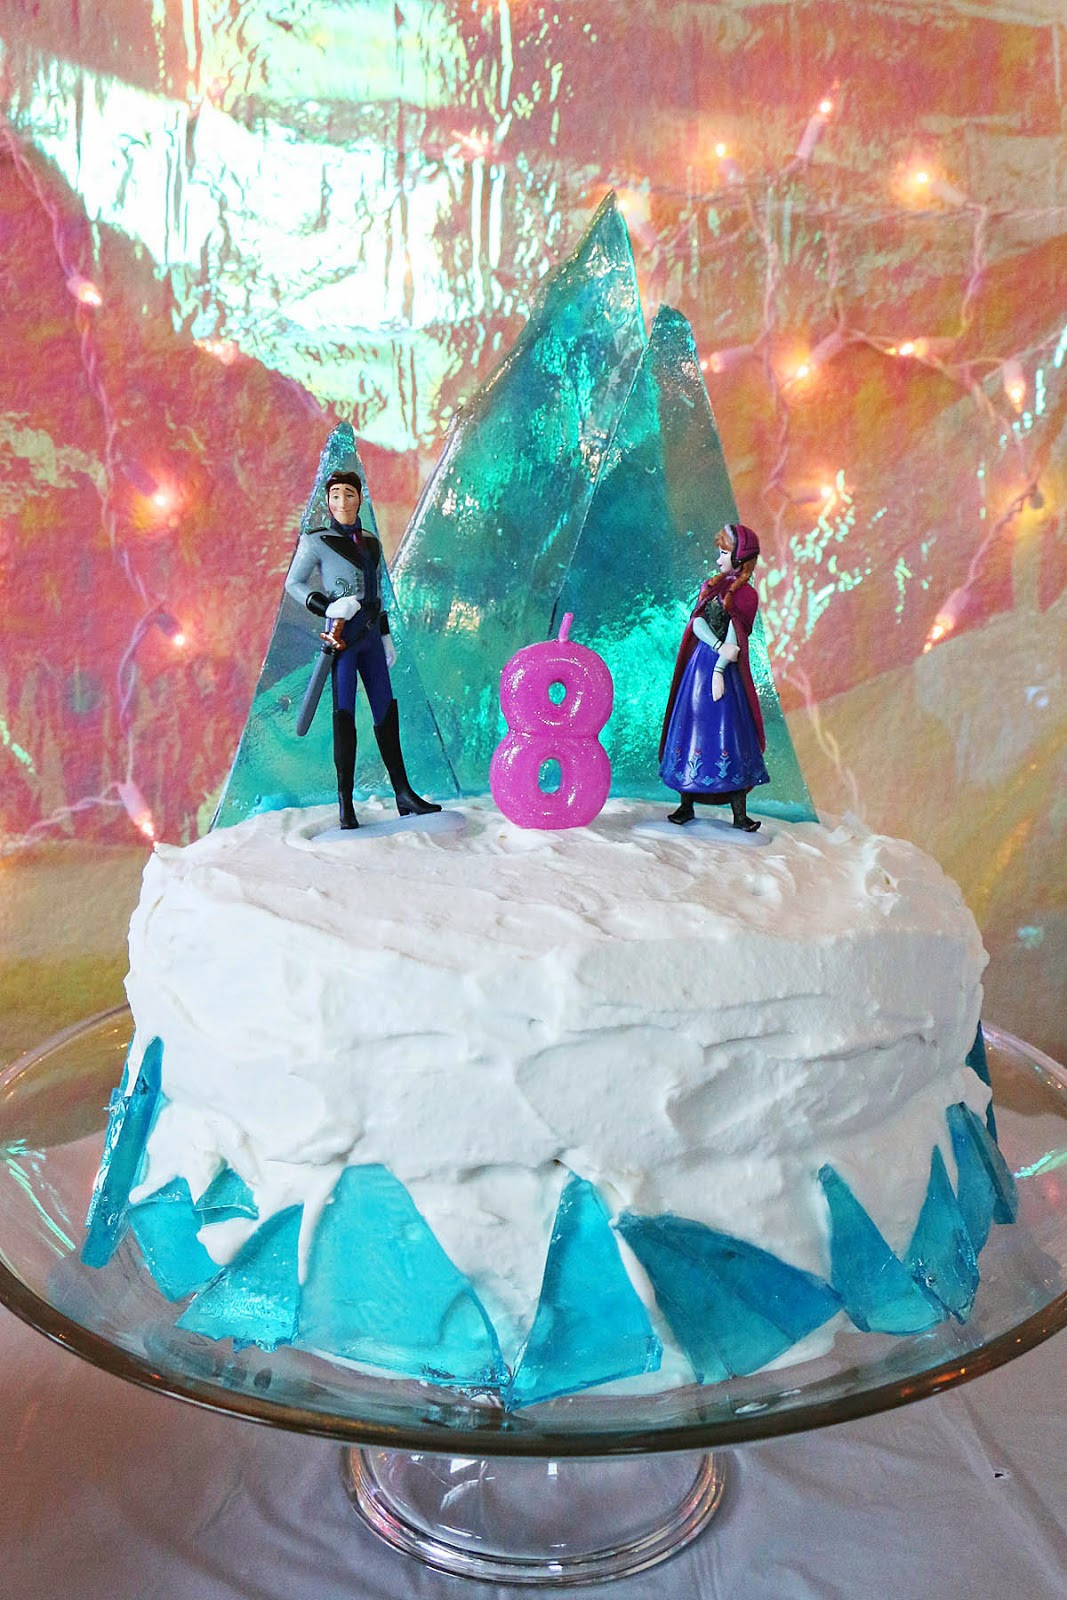 Best ideas about Frozen Birthday Cake Walmart . Save or Pin carrot top x 3 frozen birthday party Now.